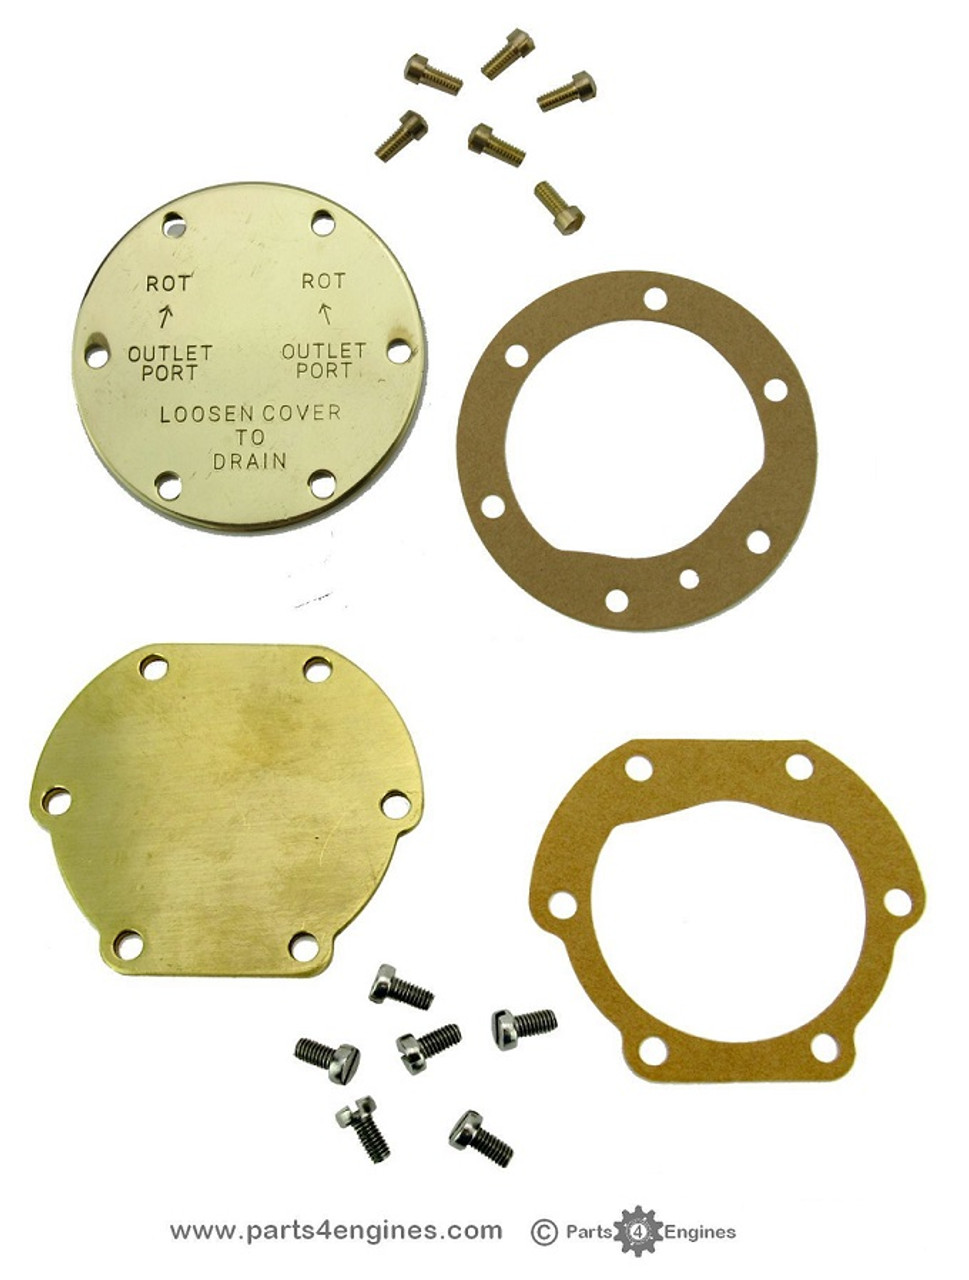 Volvo Penta MD2020 raw water pump EARLY and LATE End Cover kit - parts4engines.com